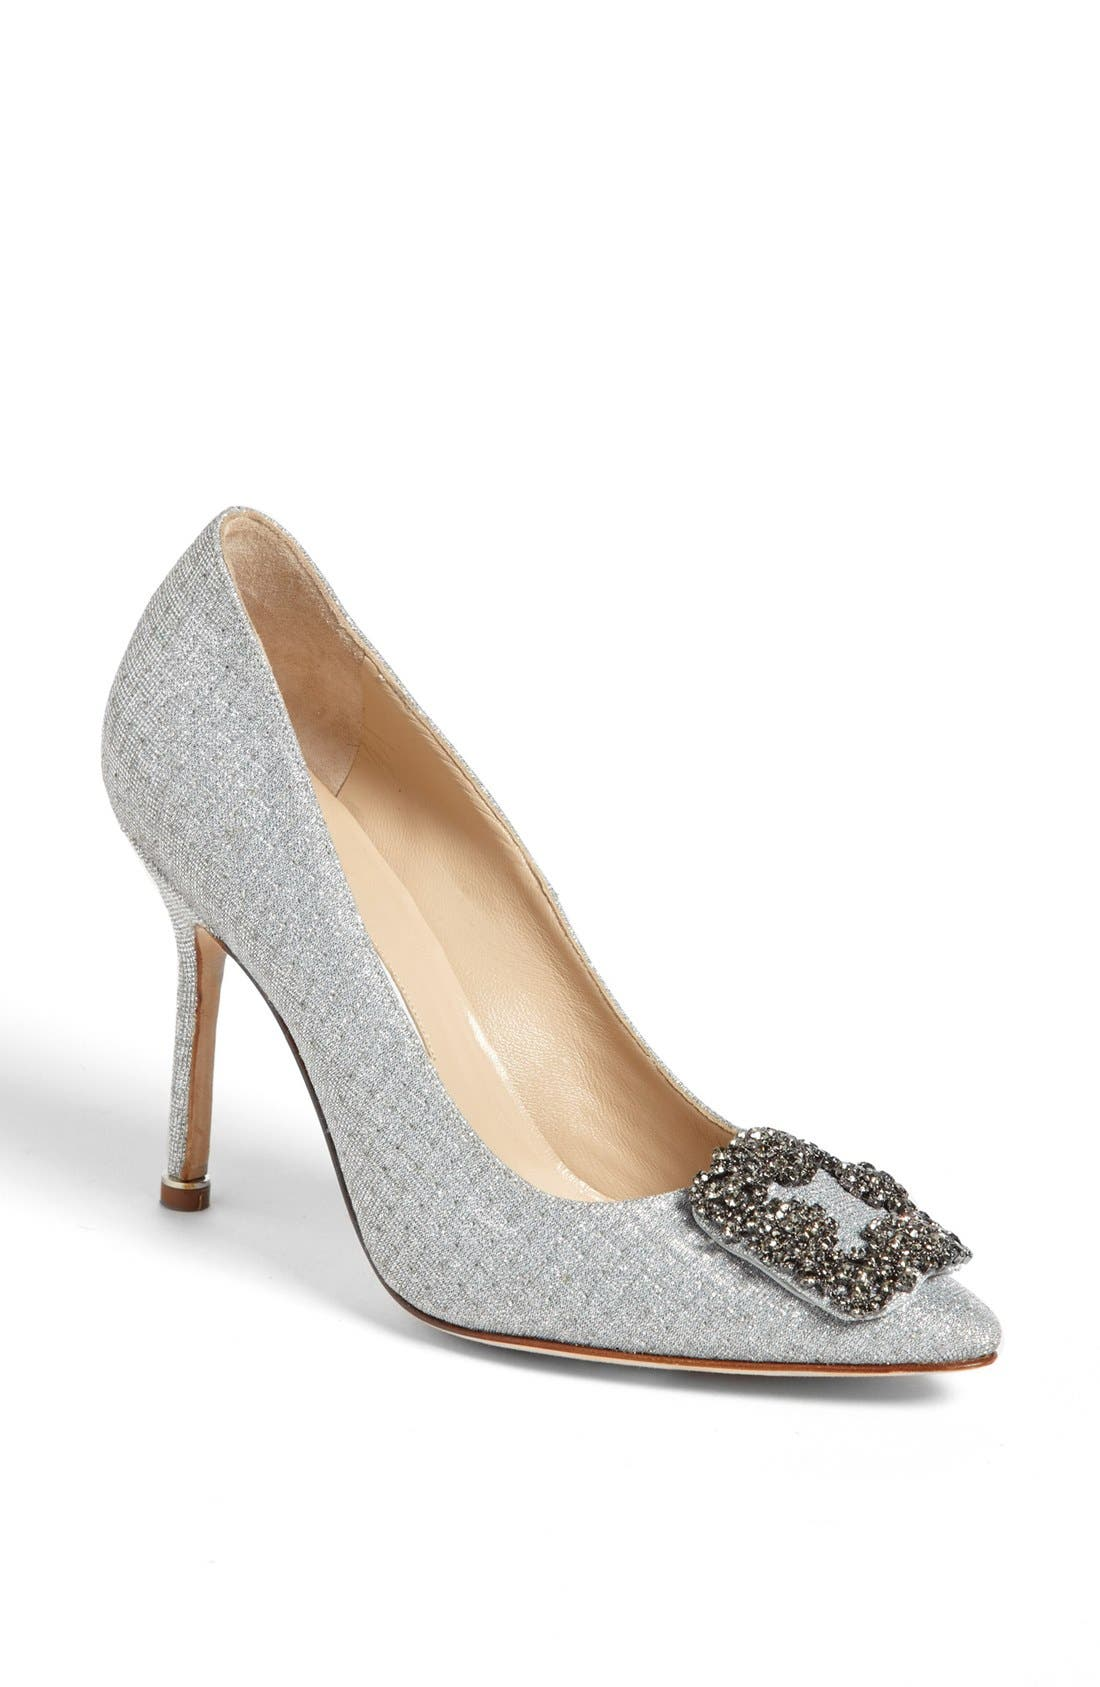 Womens Wedding Shoes Nordstrom Nordstrom